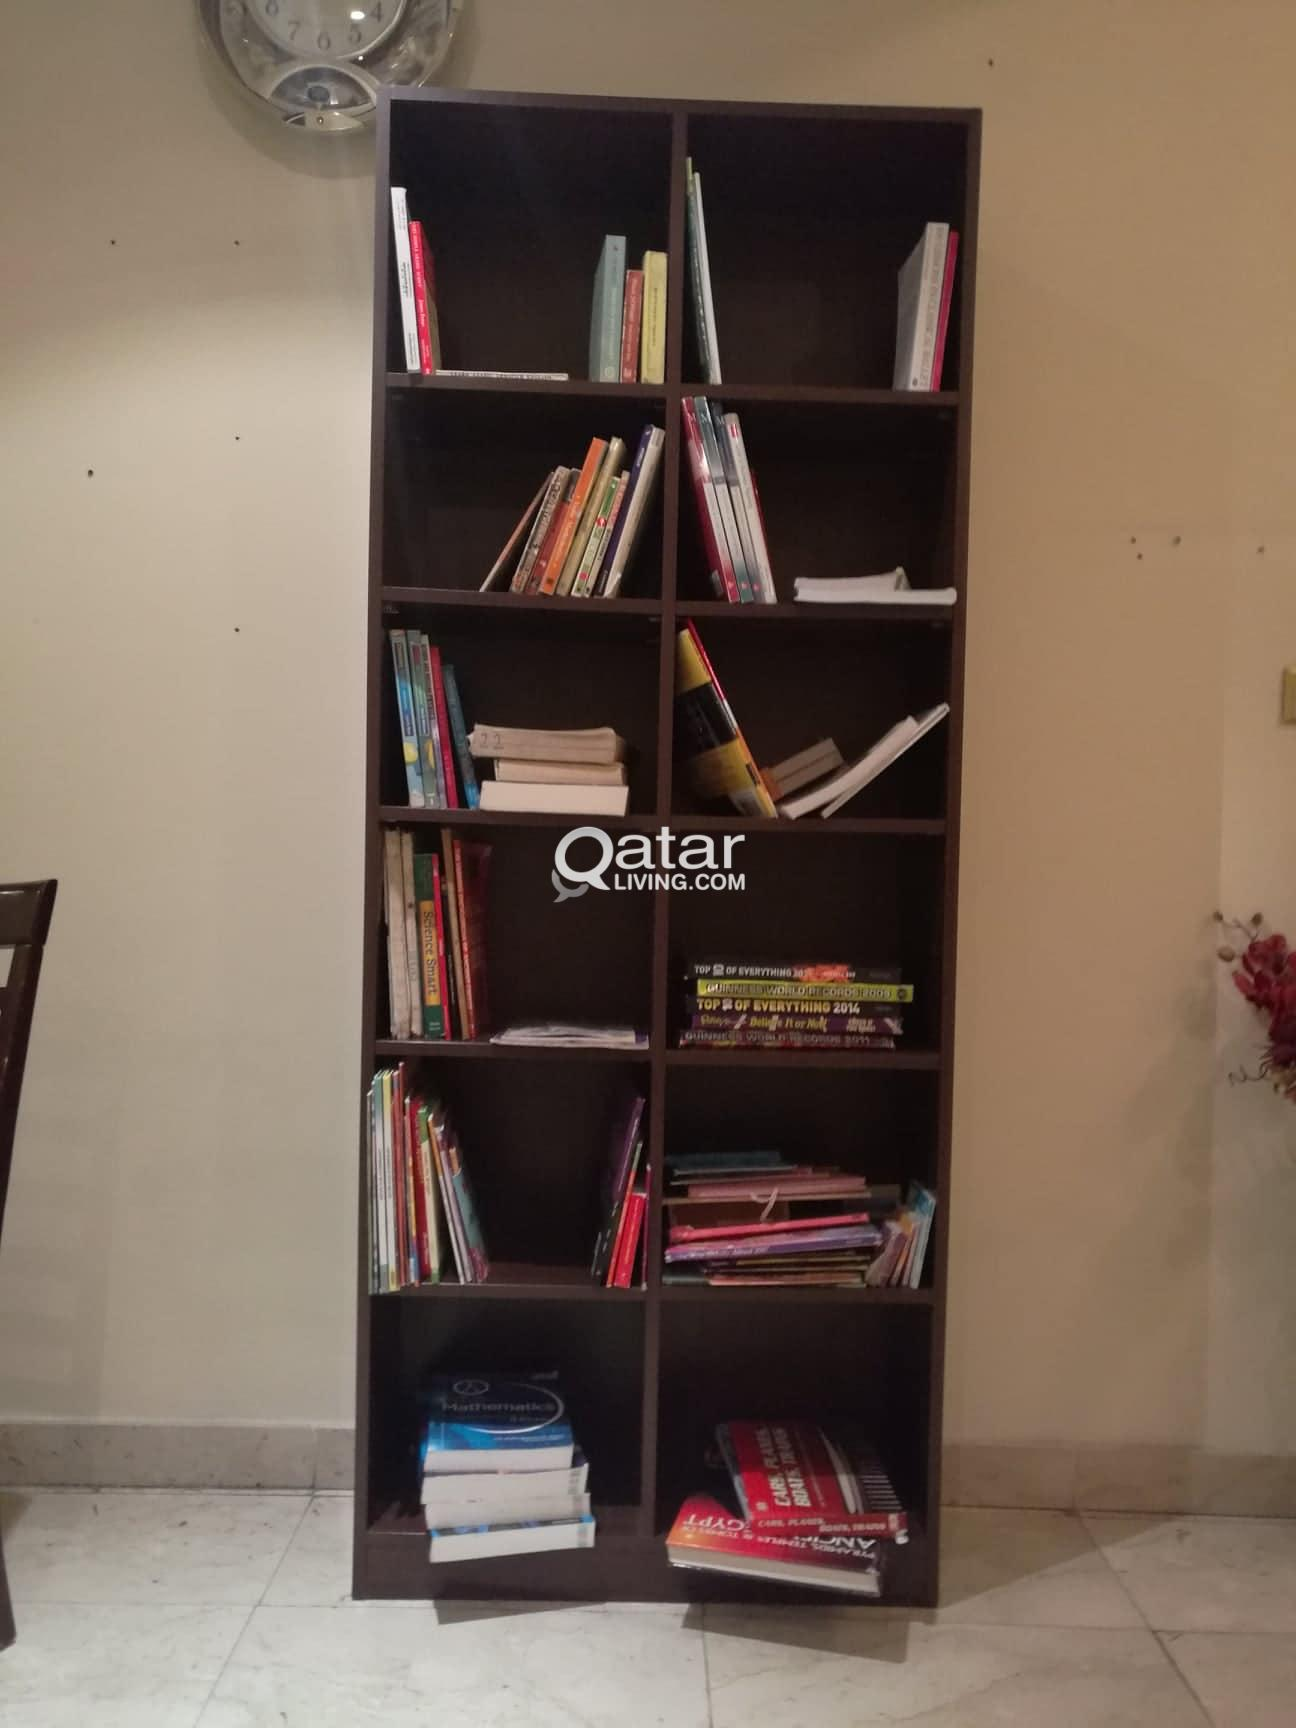 various bookshelves/display shelves/storage